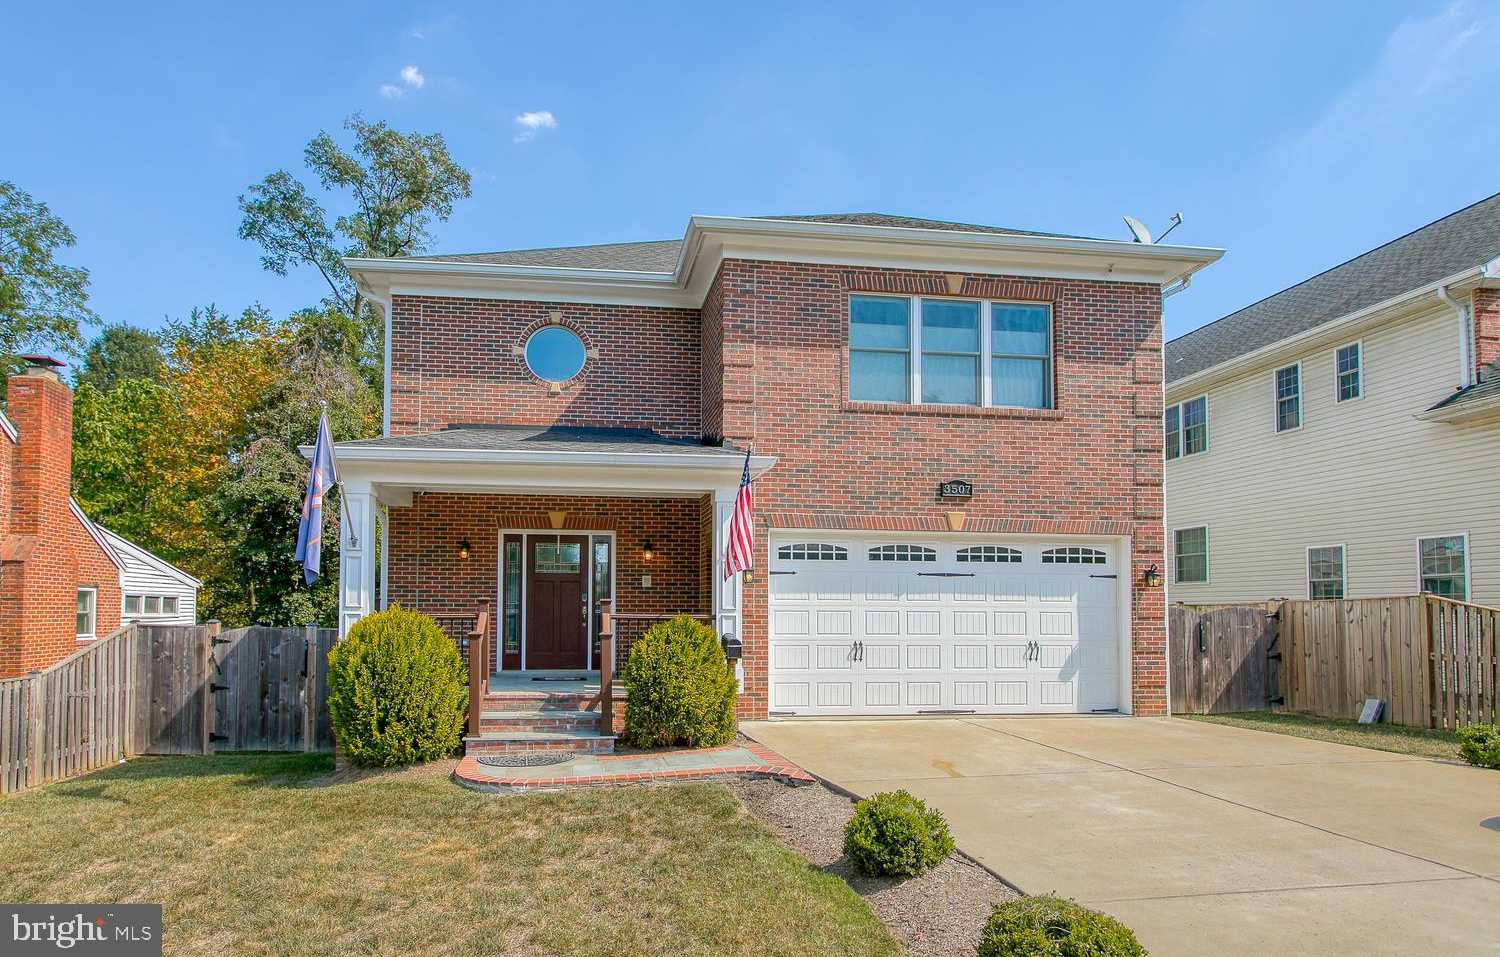 $1,150,000 - 6Br/5Ba -  for Sale in Courtland Park, Falls Church